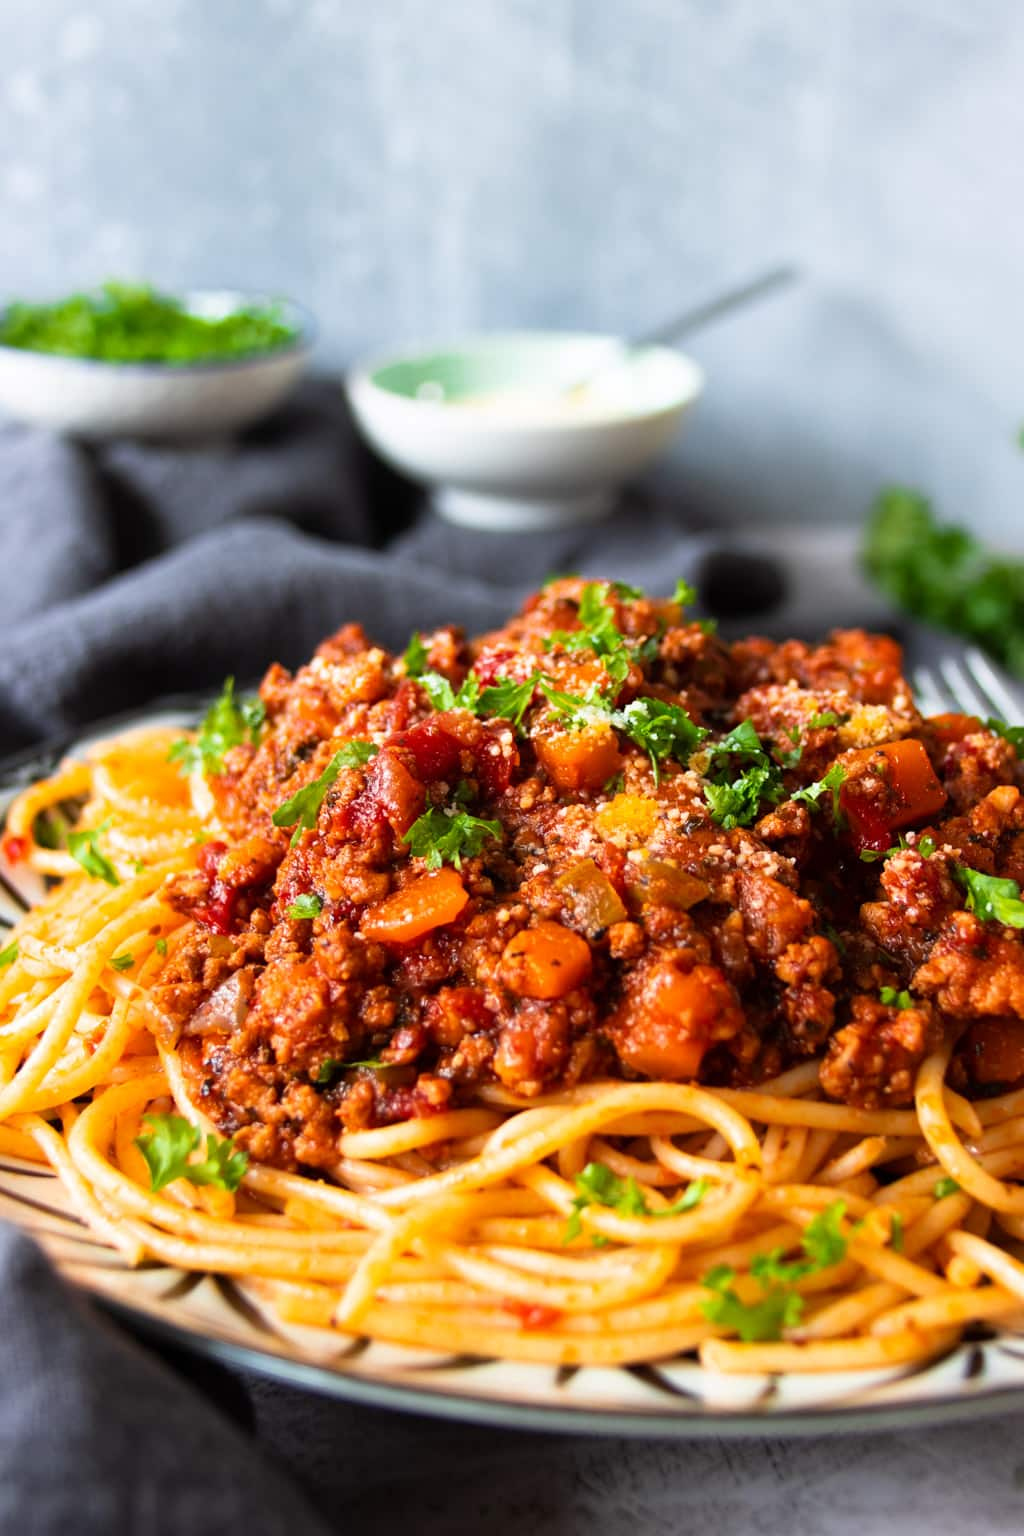 Spaghetti Bolognese served on a plate, garnished with chopped parsley and grated  Parmesan cheese